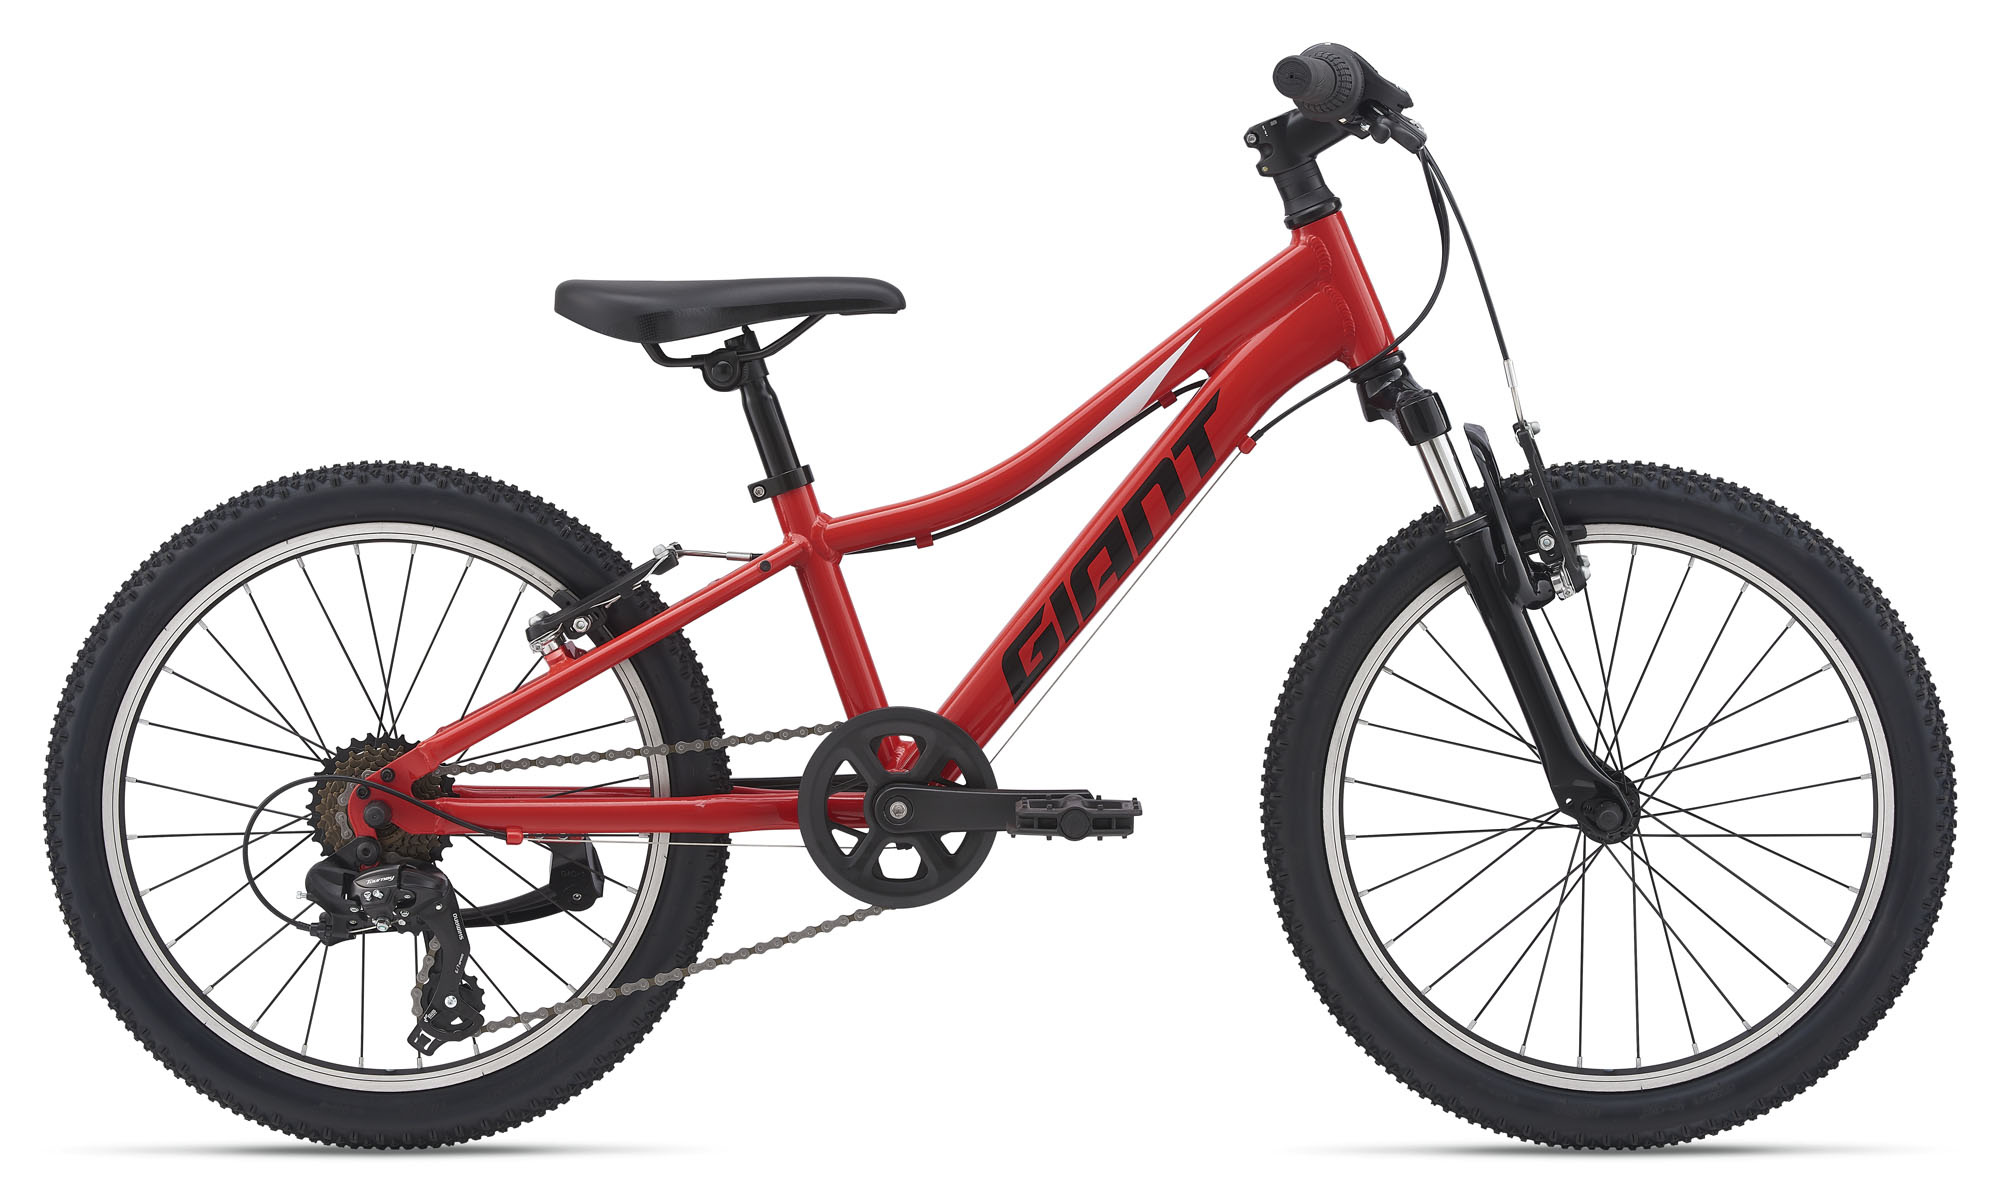 2021 XTC Jr 20 Pure Red